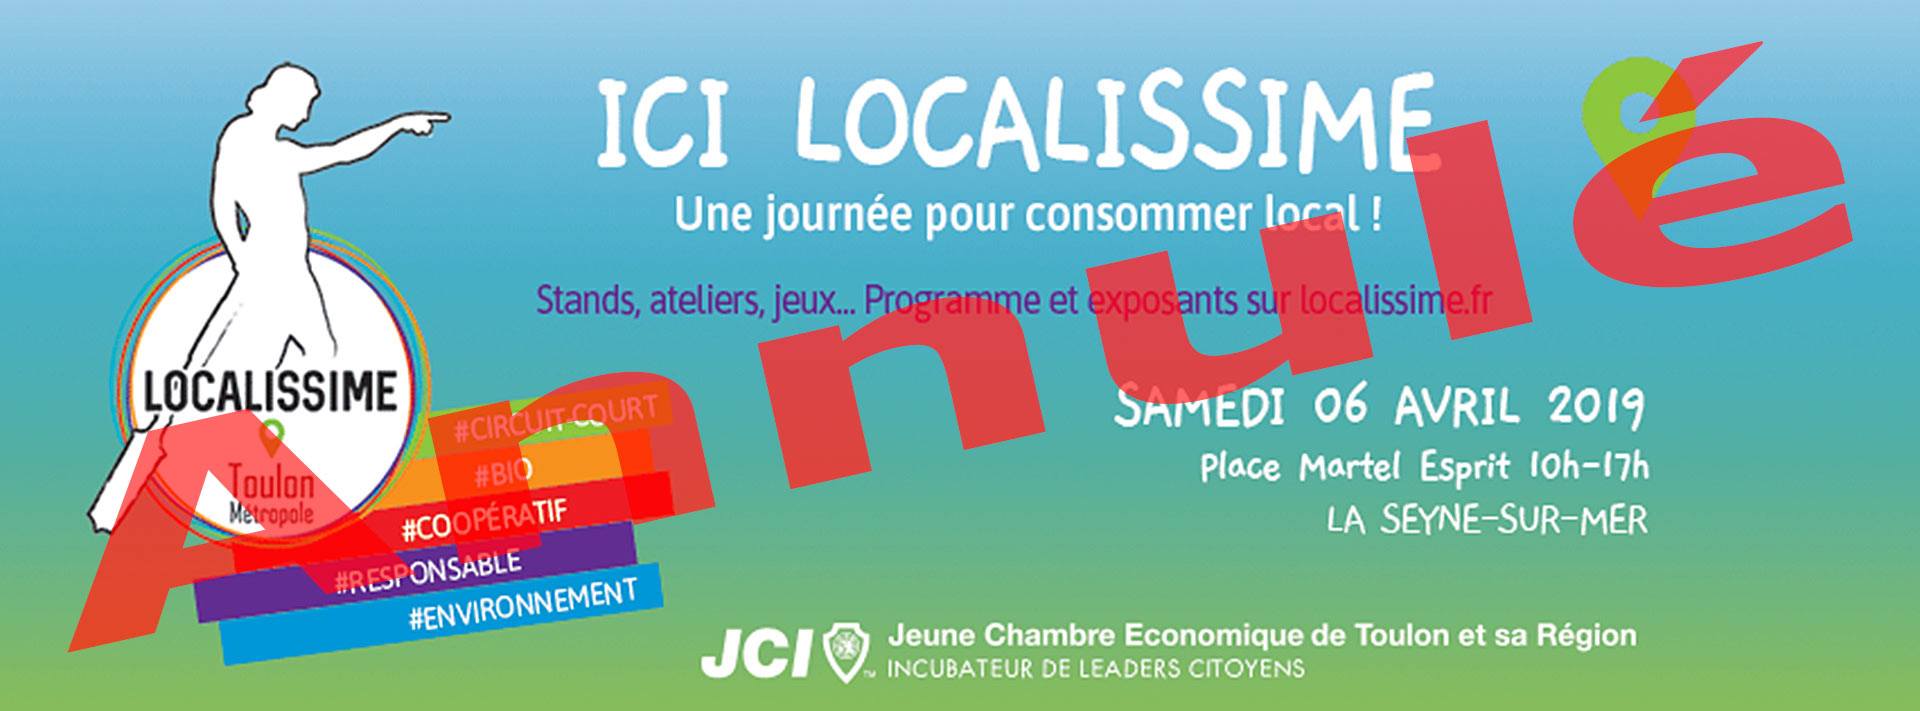 Ici Localissime: Une Journée pour consommer local, le 06 Avril 2019 -